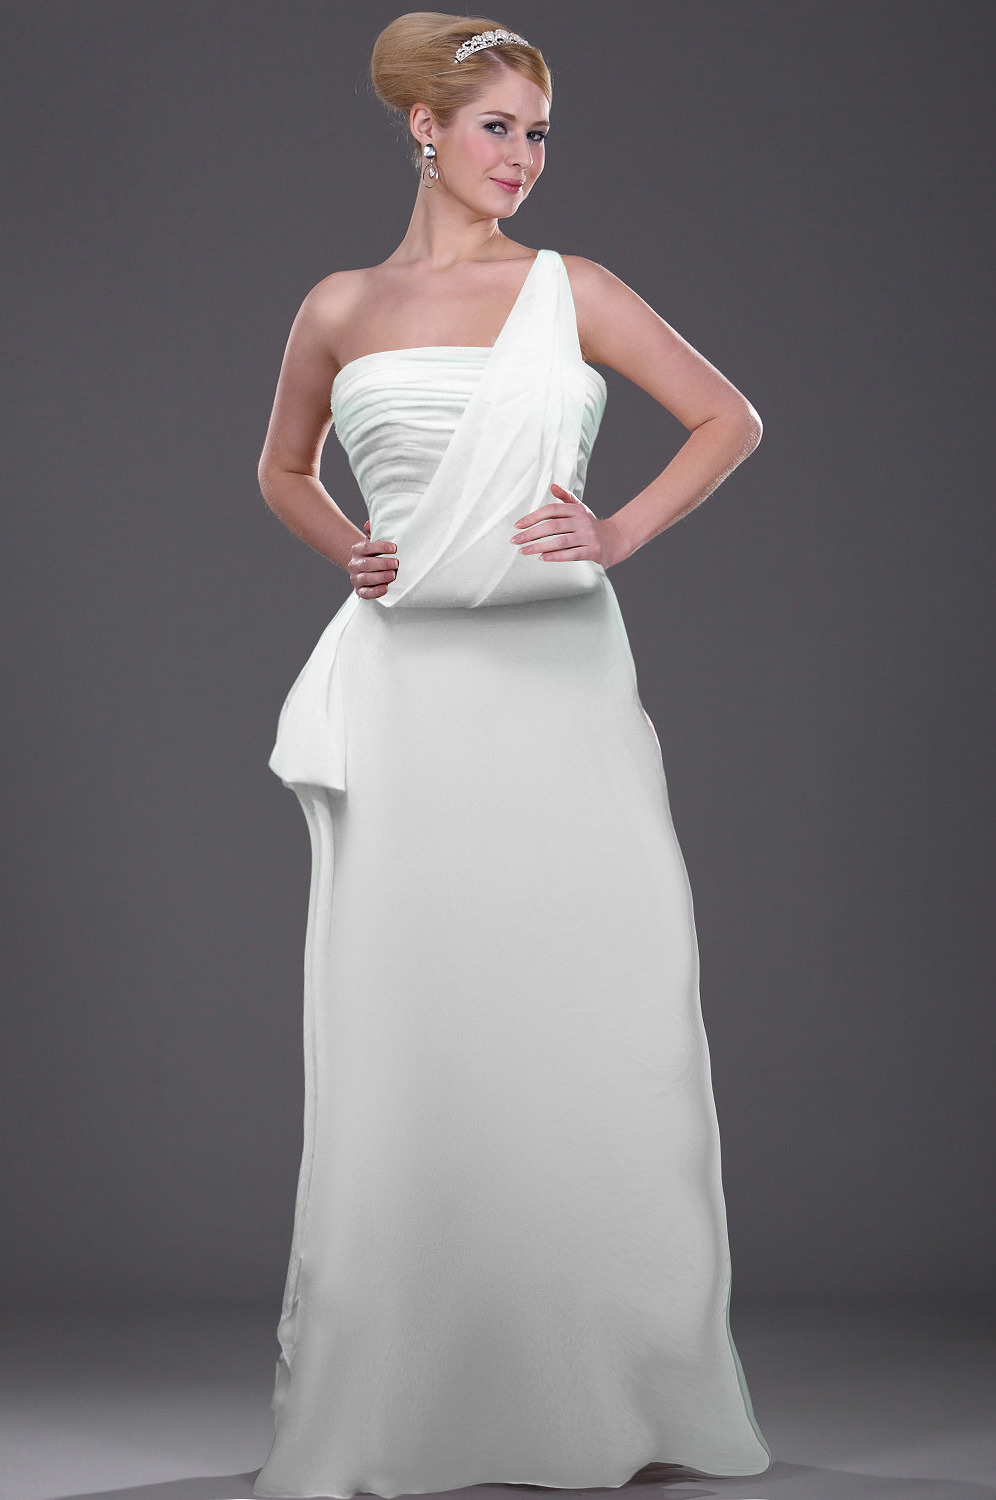 Elegant White Wedding Evening Dress (hz007)